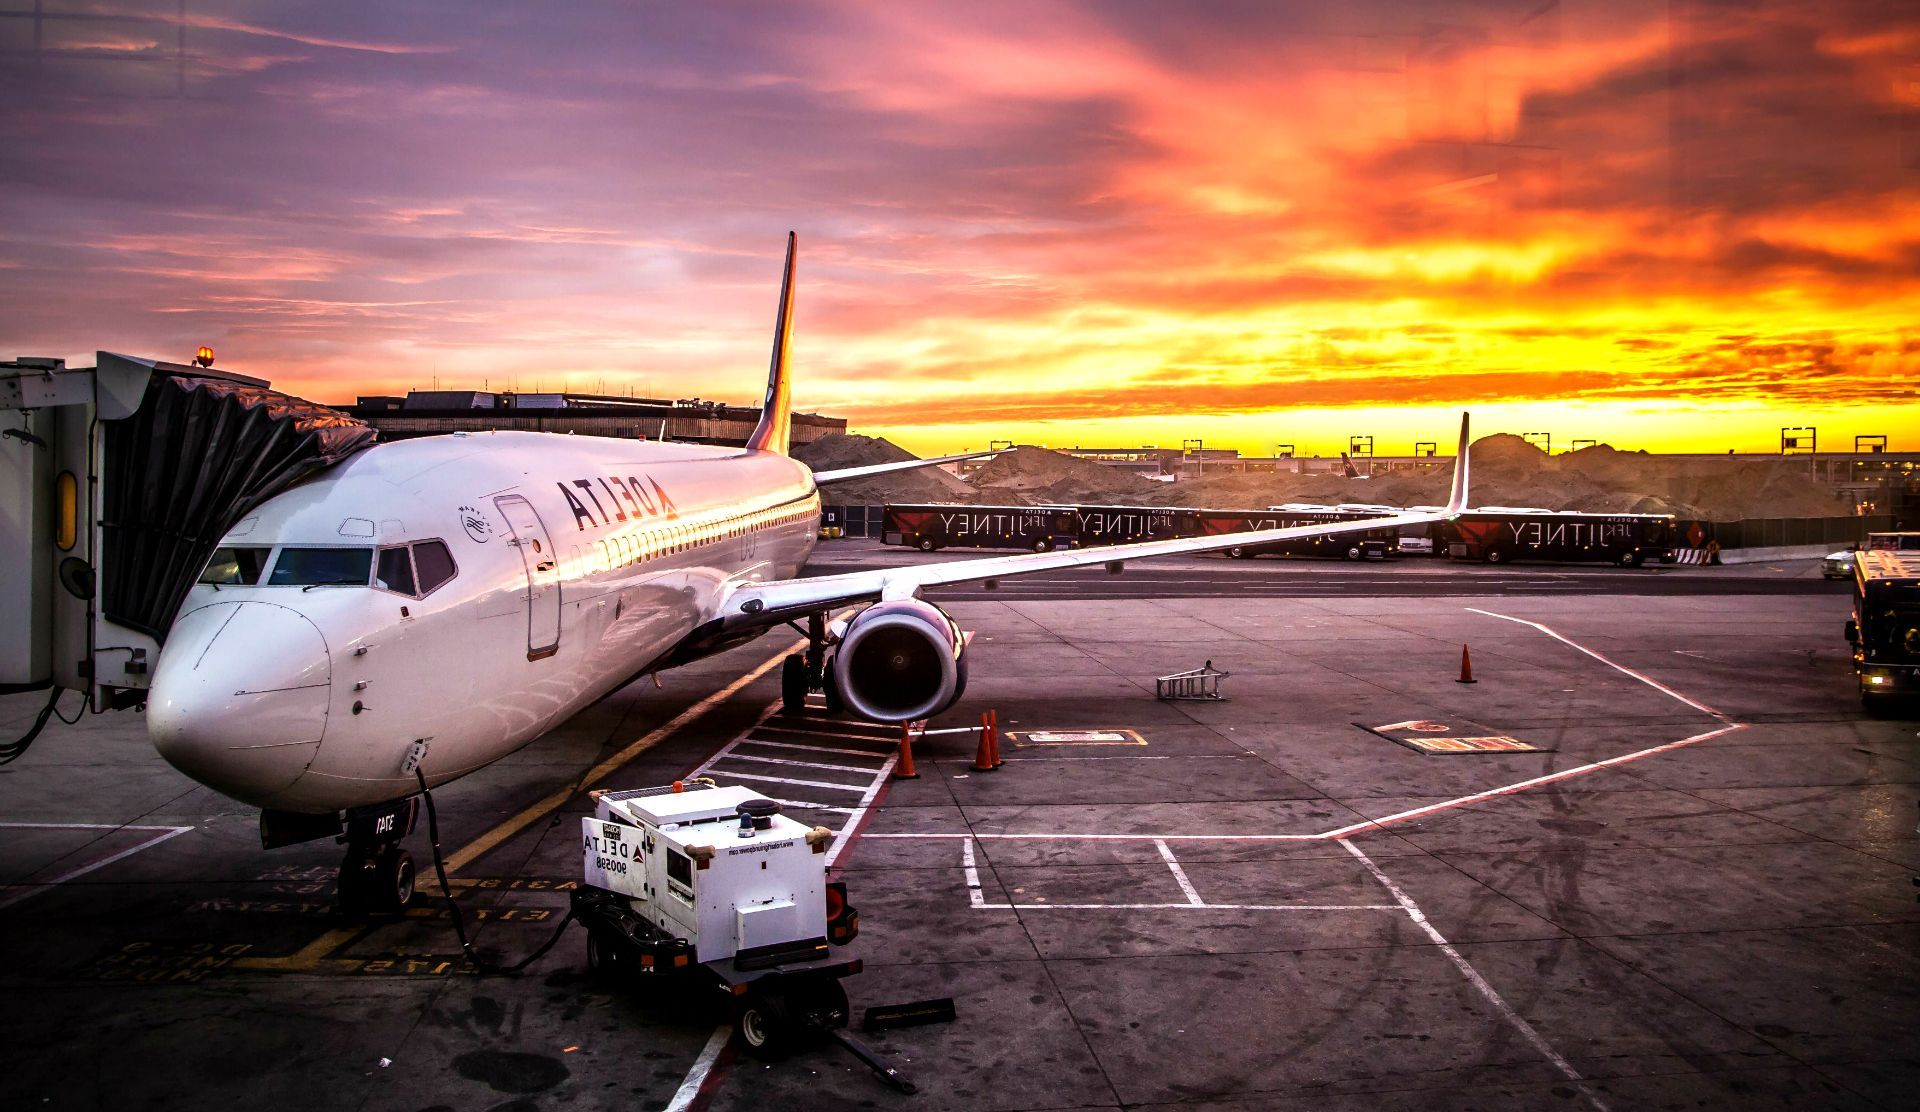 Top Free Airport Backgrounds